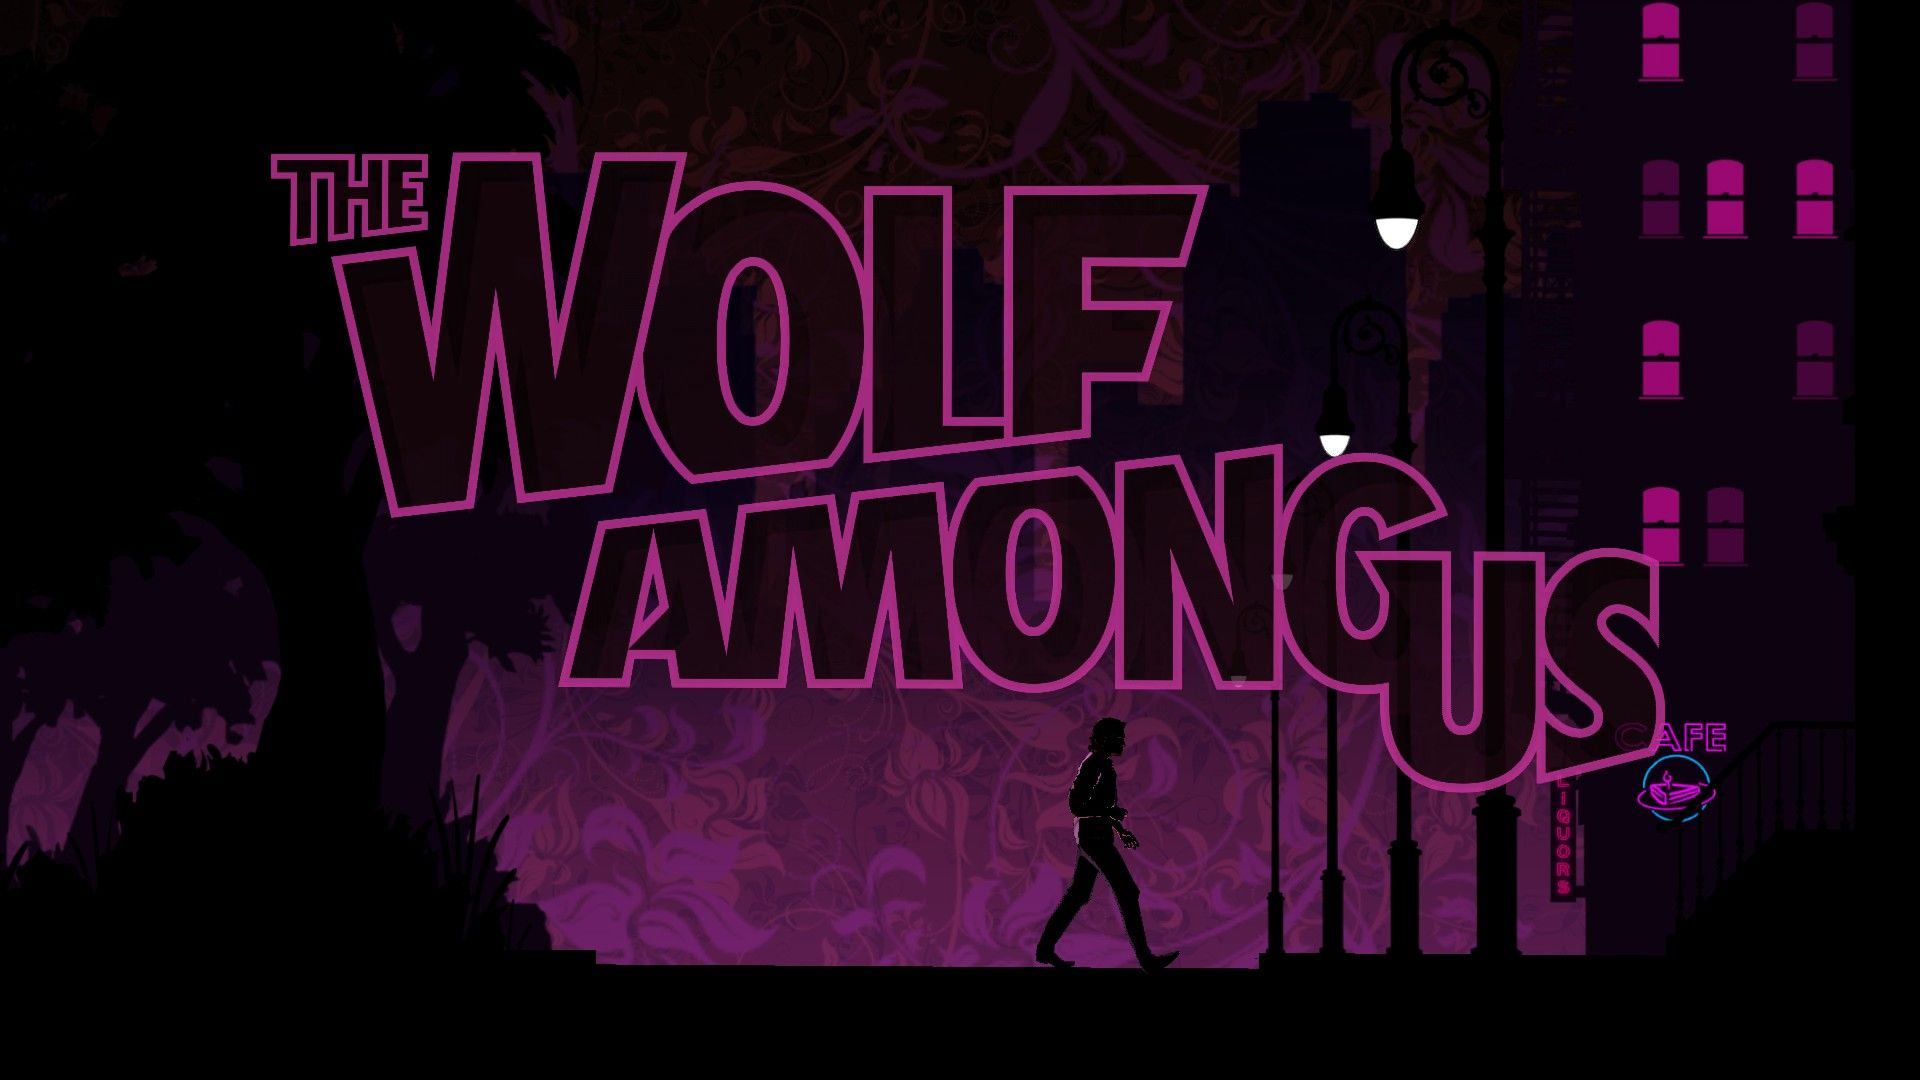 The Wolf Among Us Wallpaper Wallpapersafari The Wolf Among Us Top 10 Video Games Opening Credits